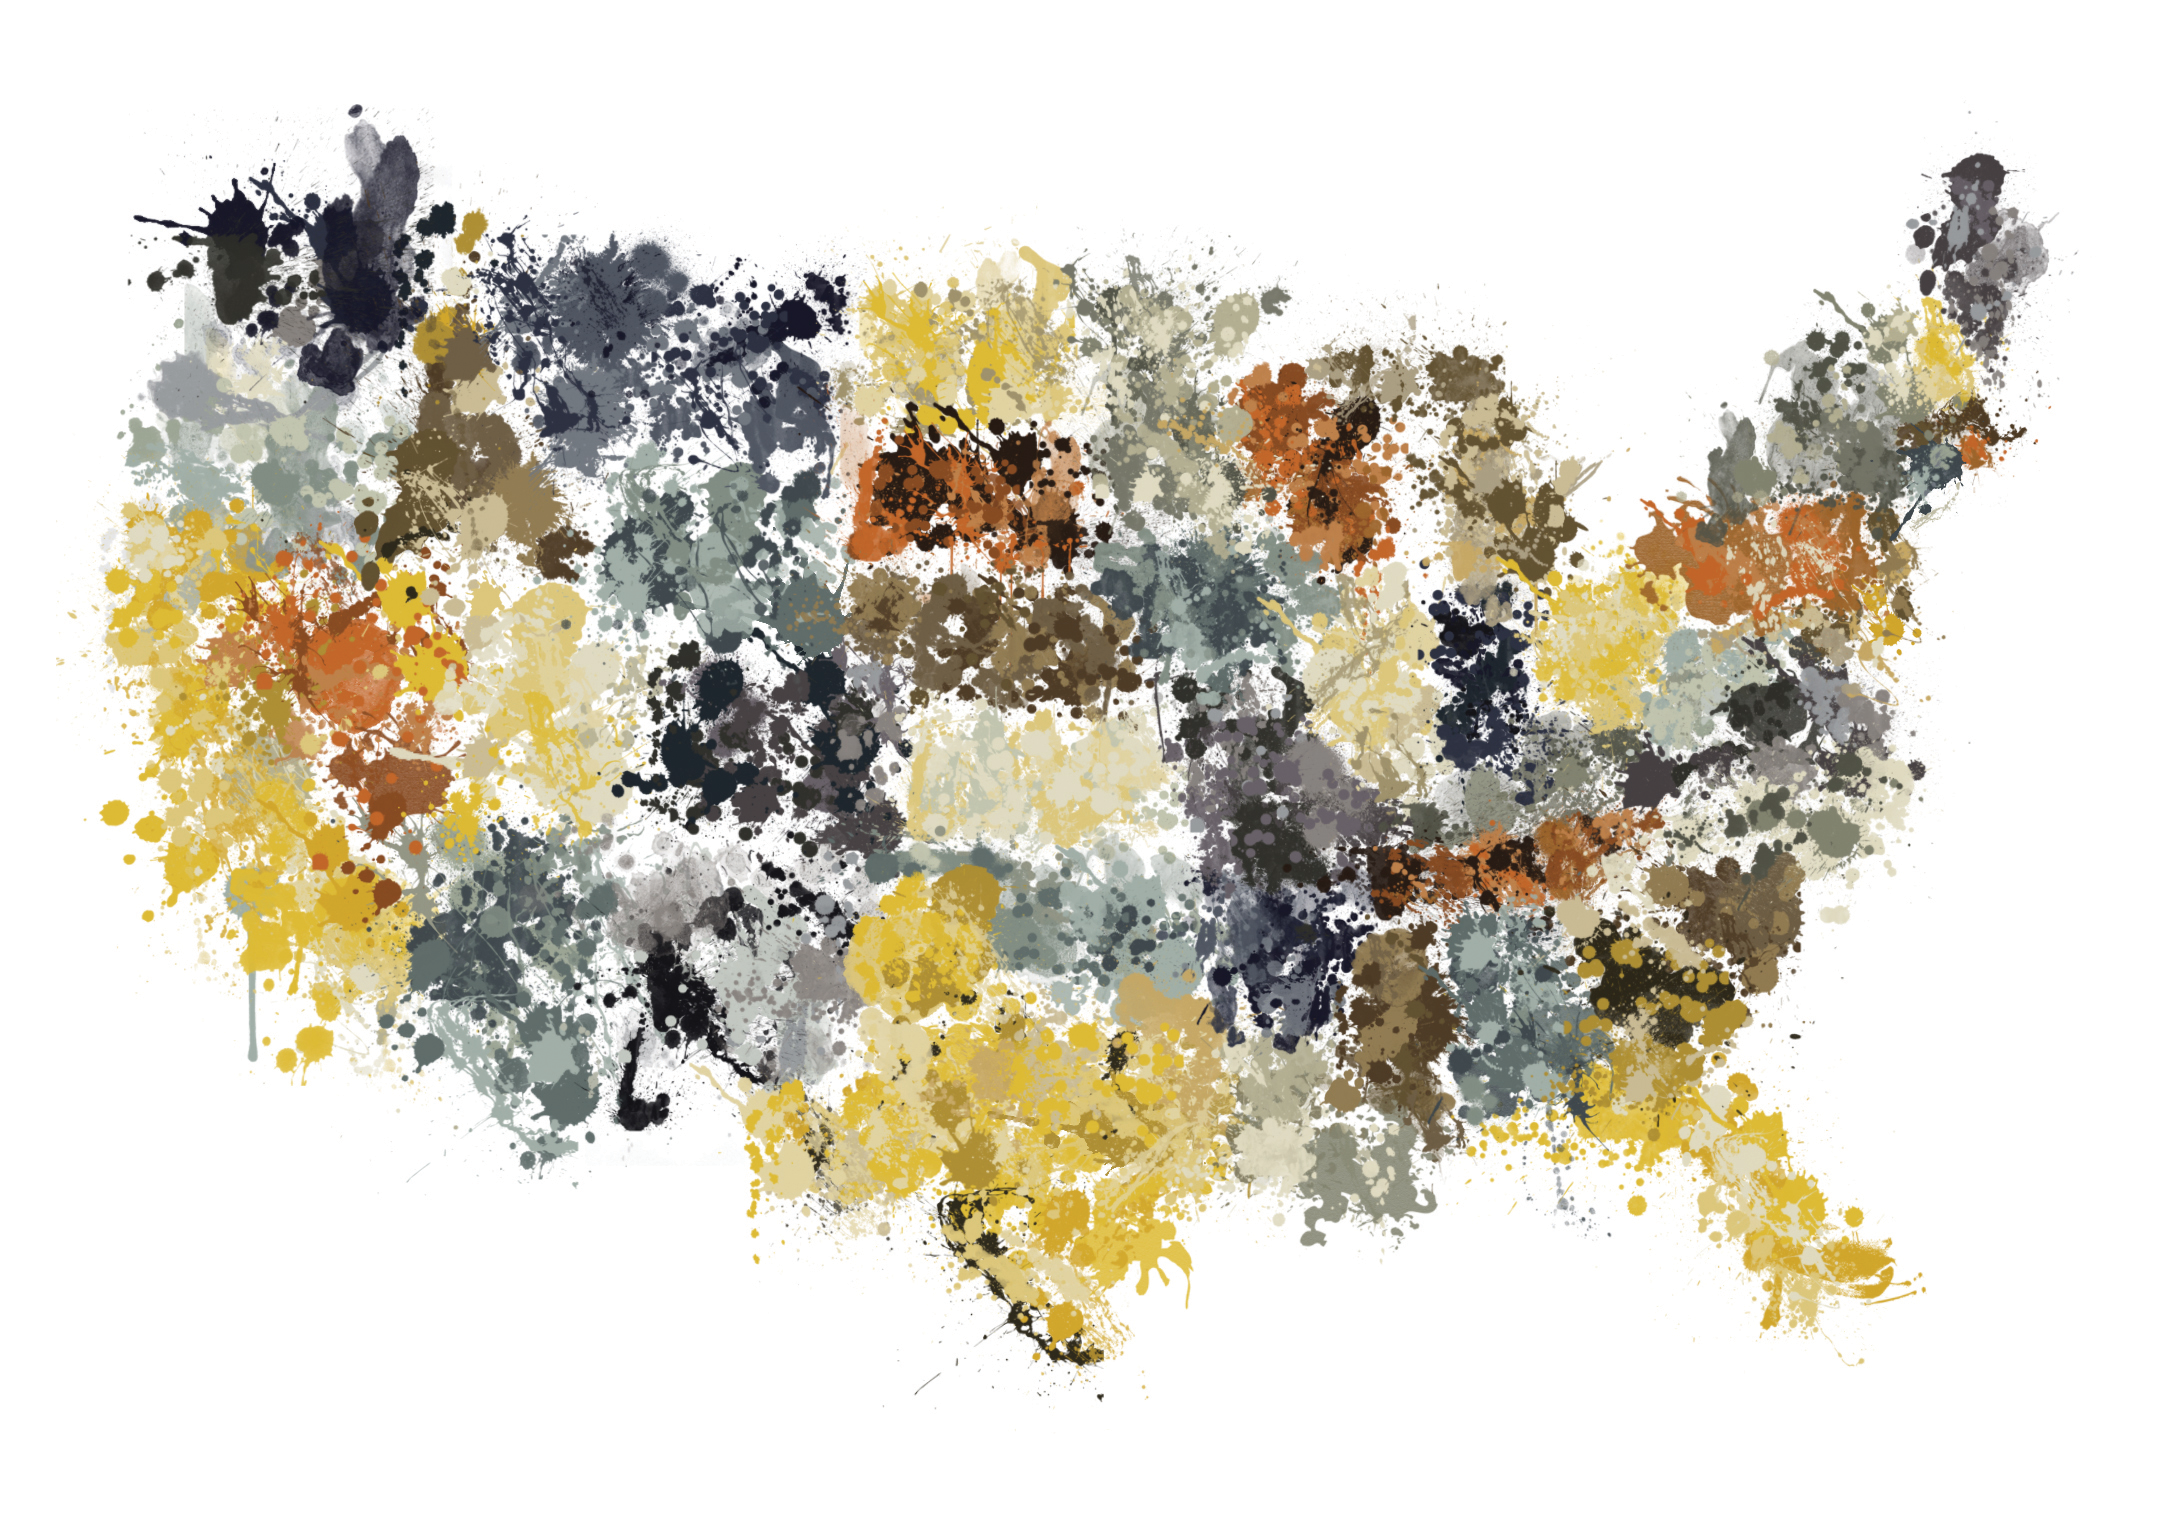 Bogus Art Map inspired by the style of Jackson Pollock